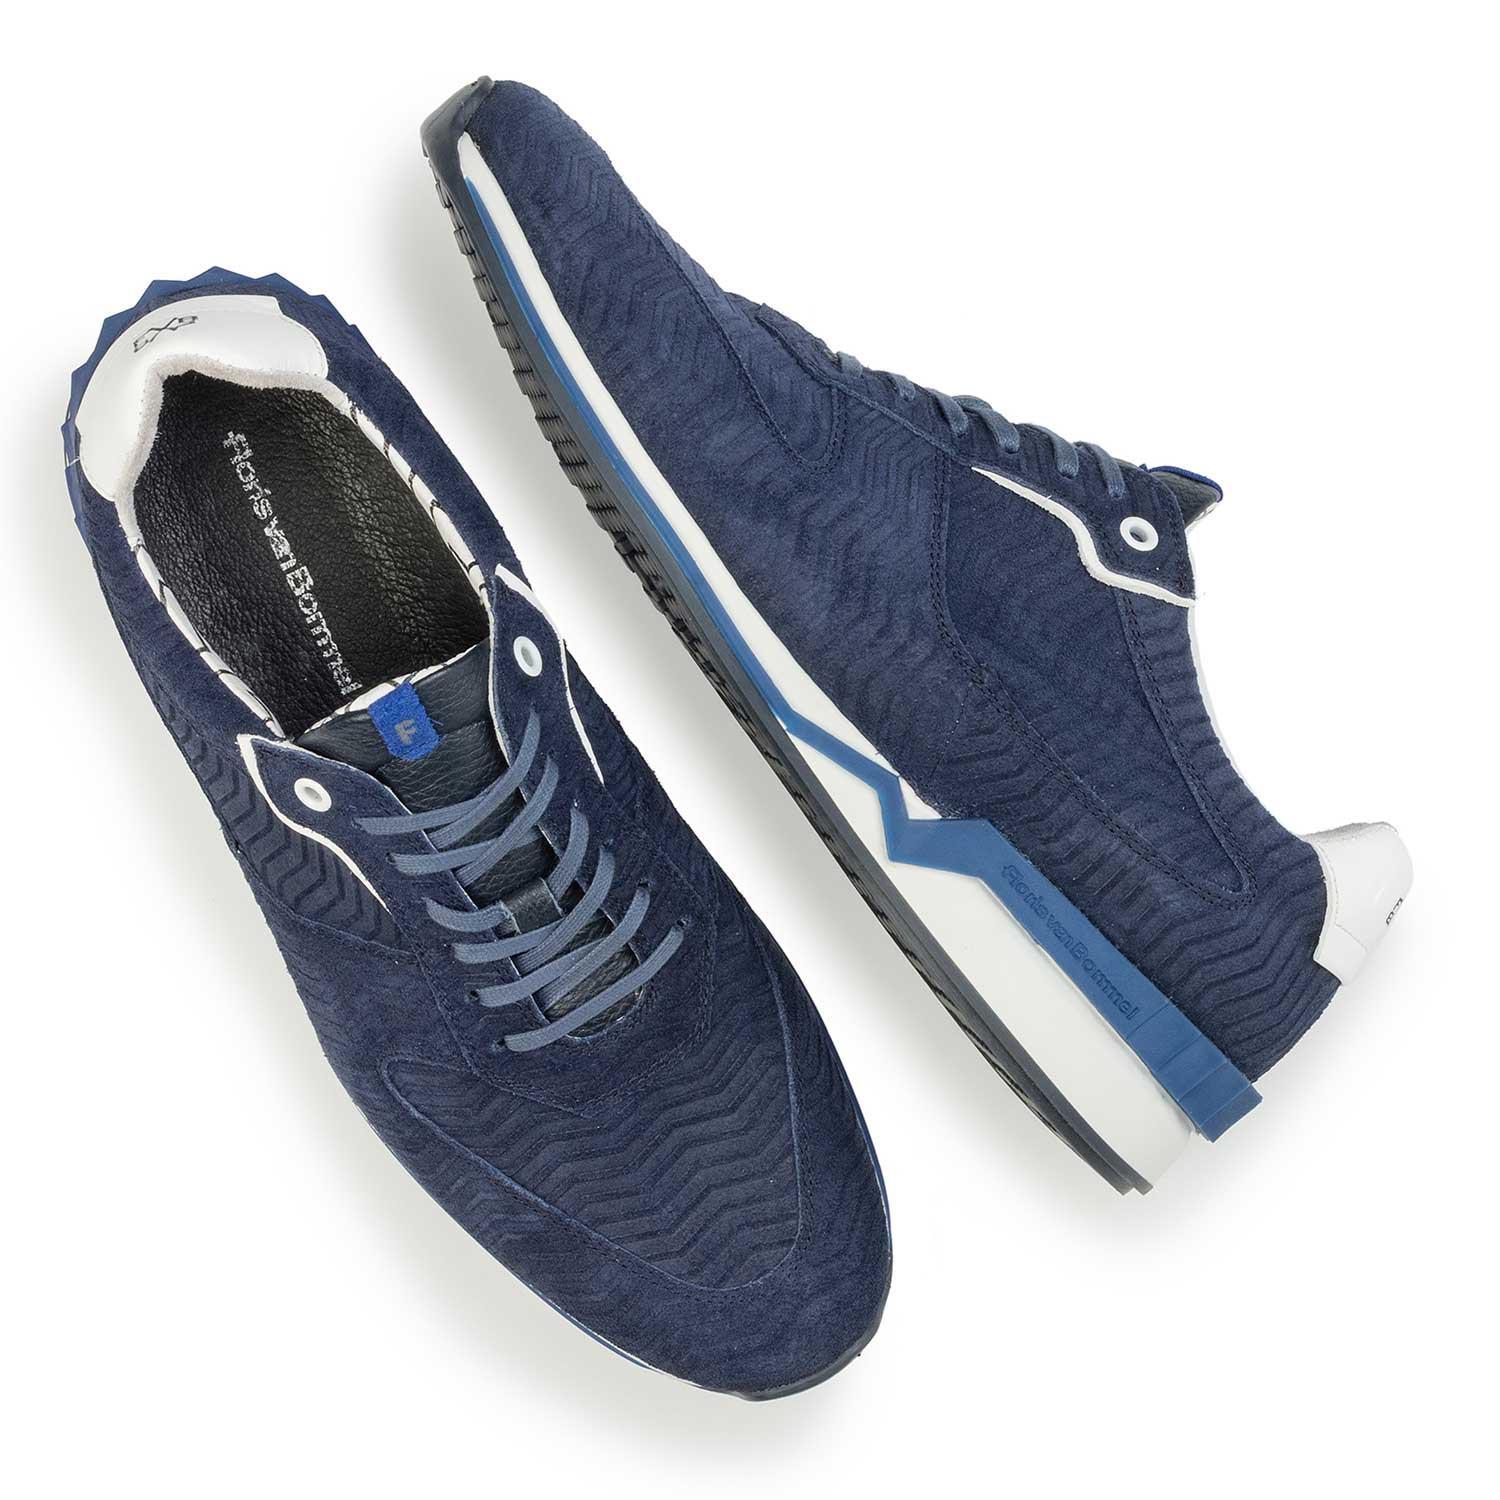 16225/00 - Dark blue suede leather sneaker with a zig-zag print